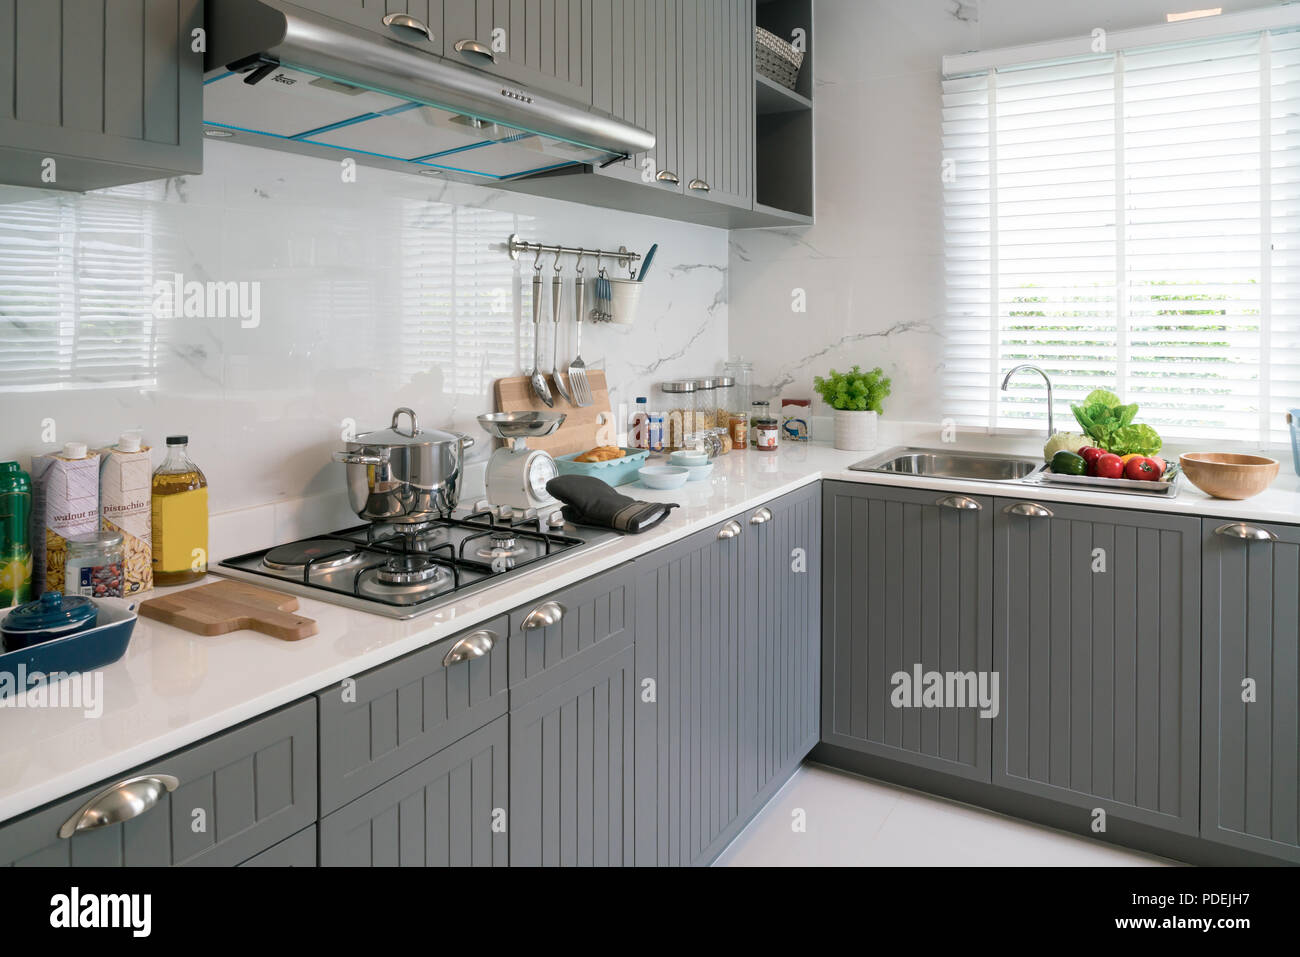 Kitchen Wood Utensils Chef Accessories Hanging Copper Kitchen With White Tiles Wall Stock Photo Alamy